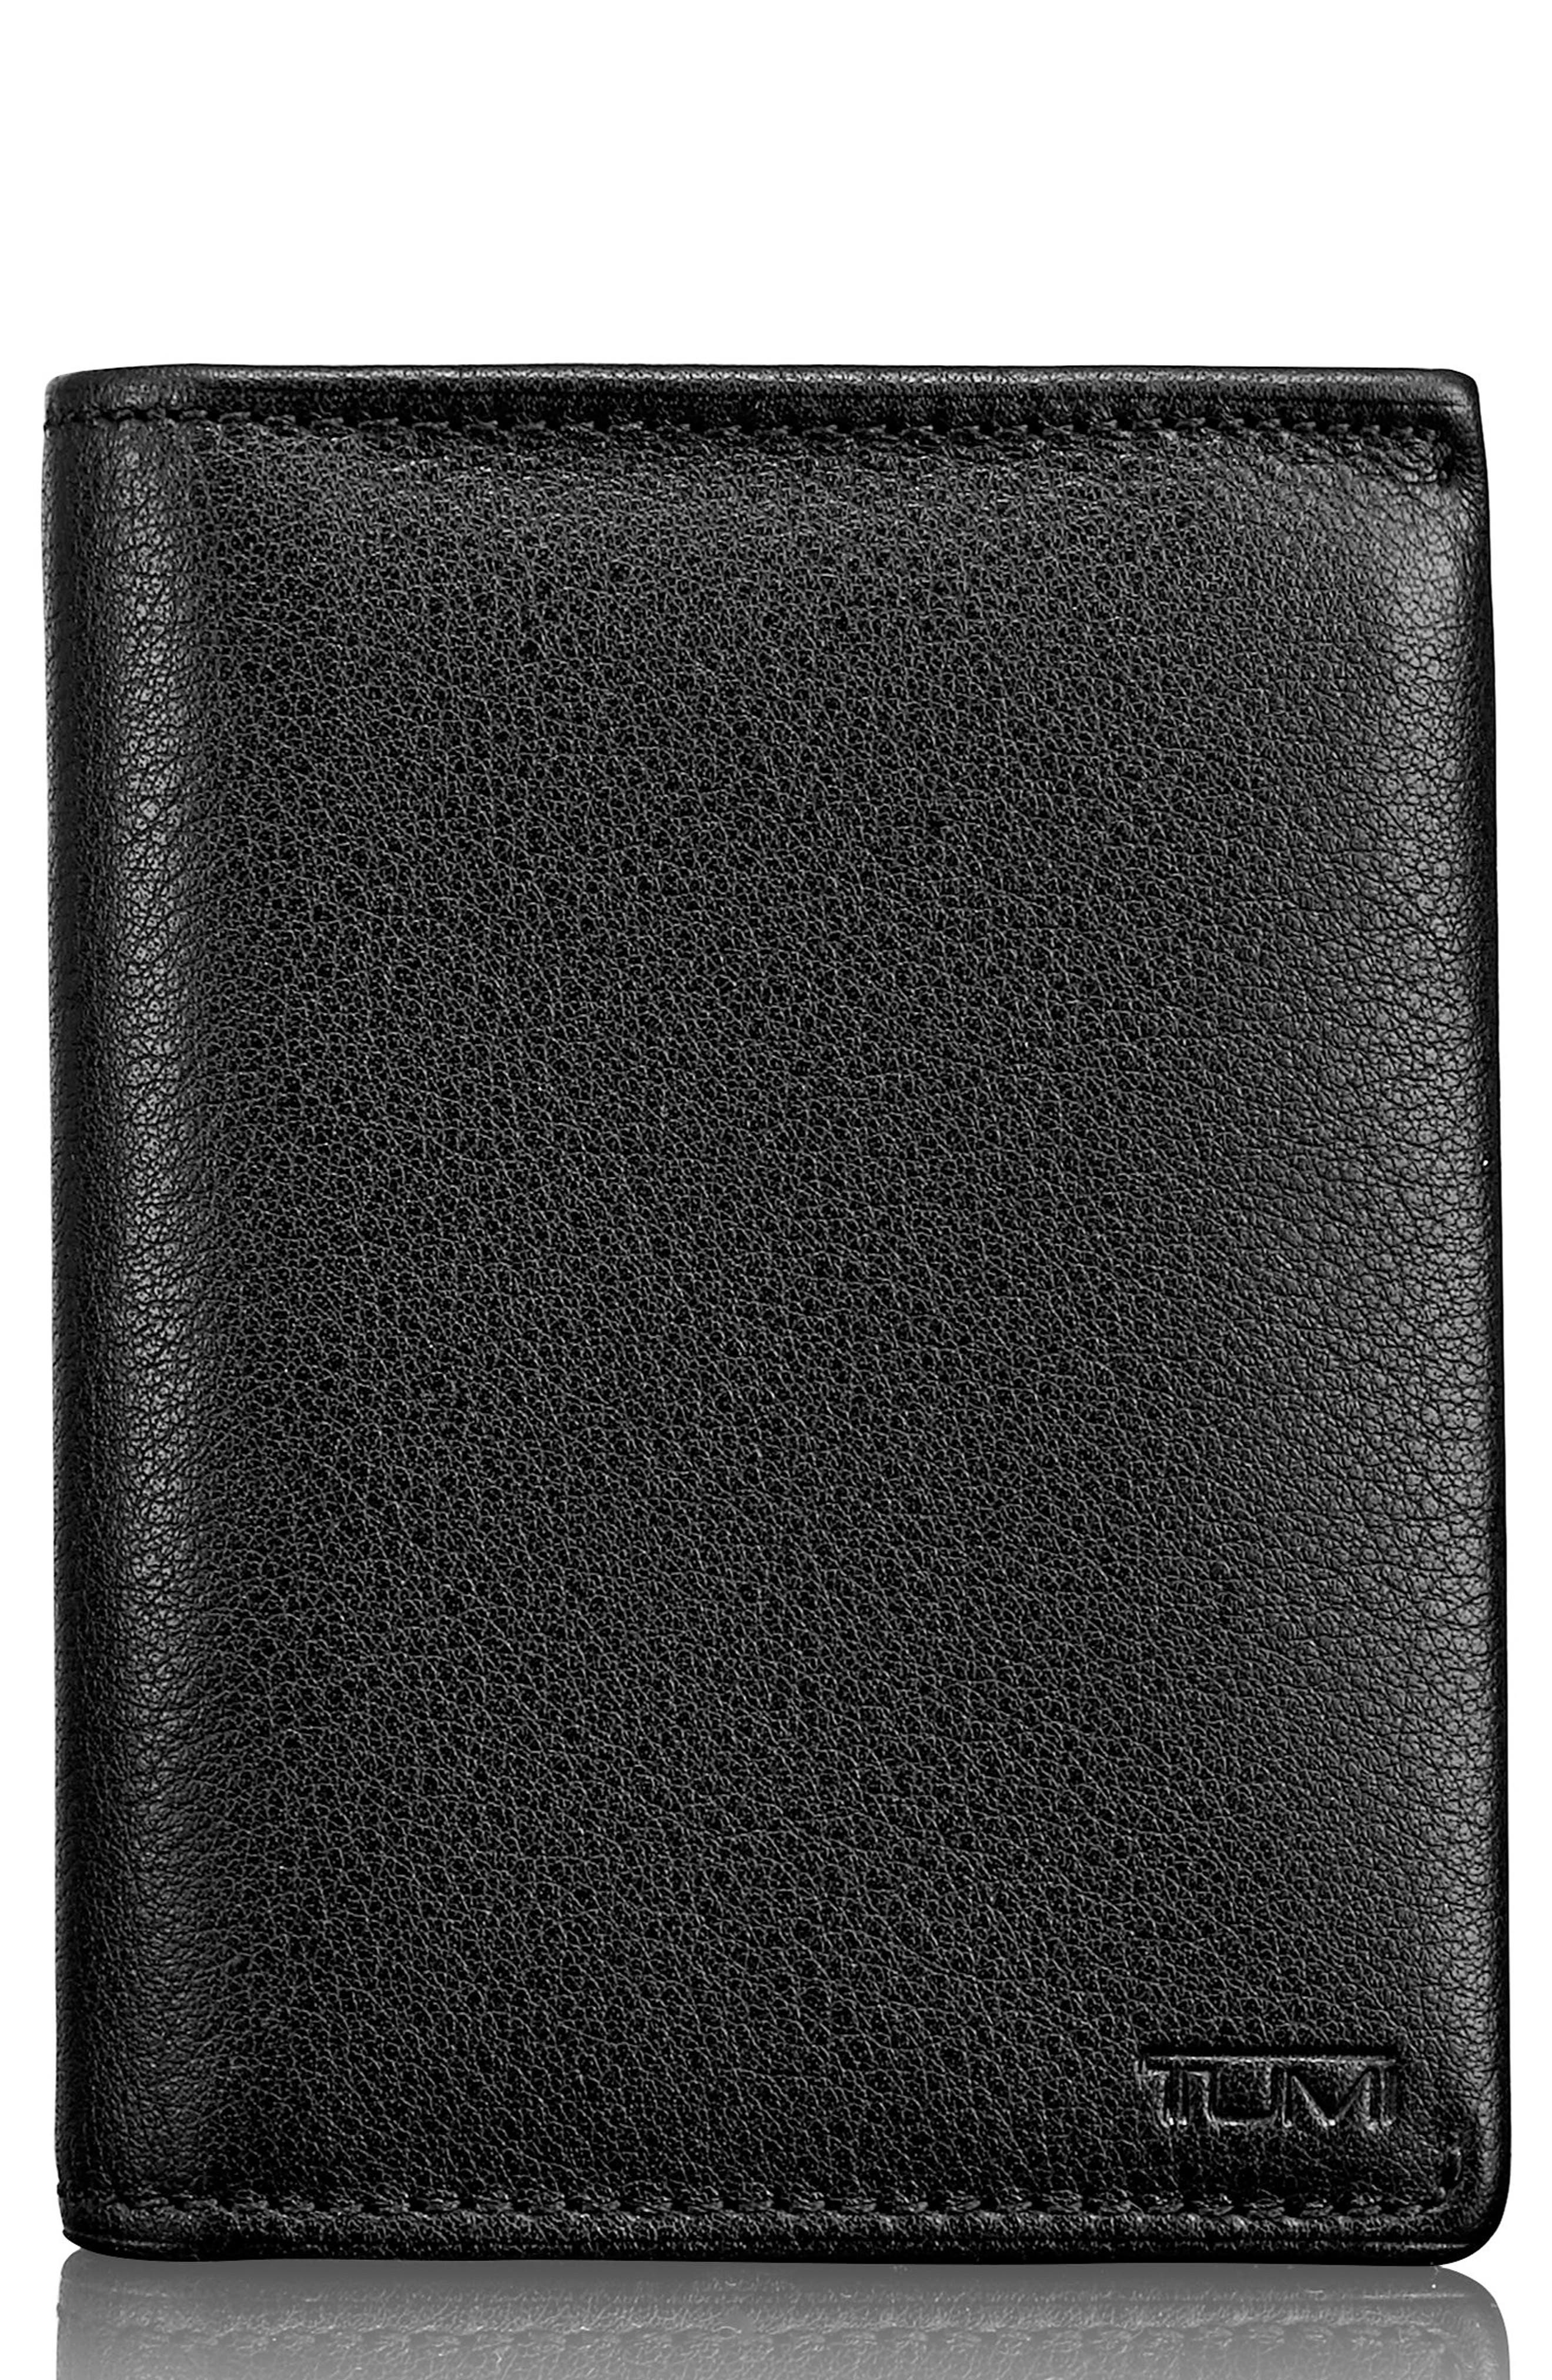 Leather L-Fold Wallet,                         Main,                         color, Black Textured